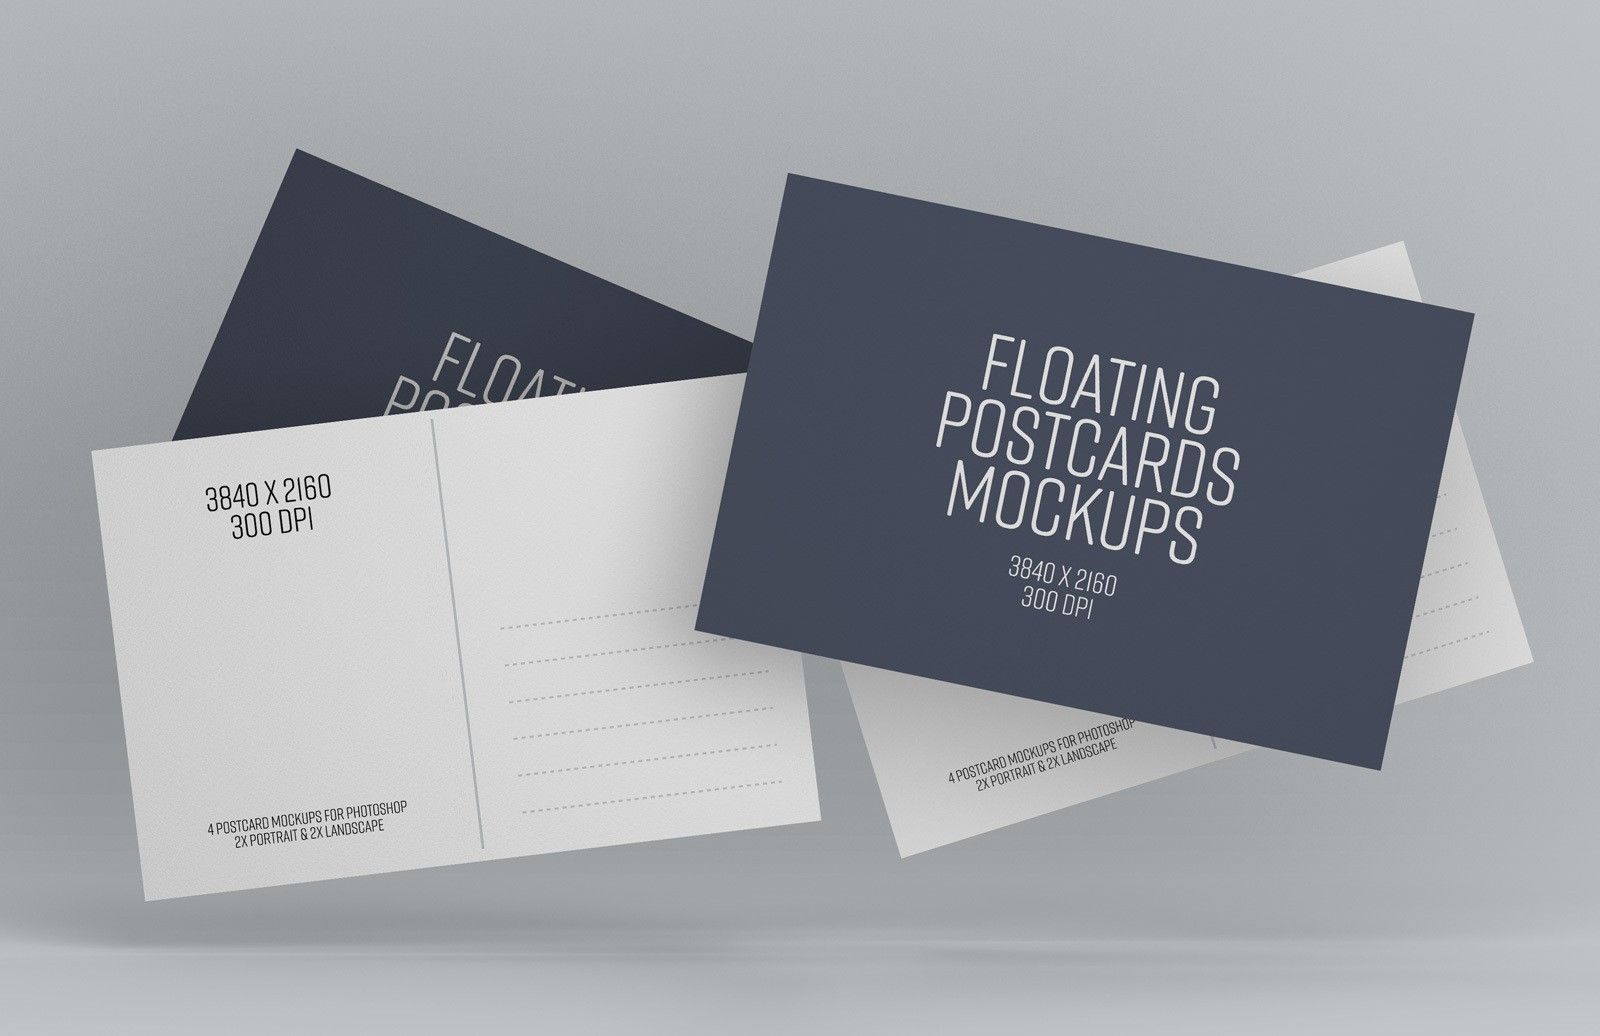 Floating Postcards Mockup Preview 1